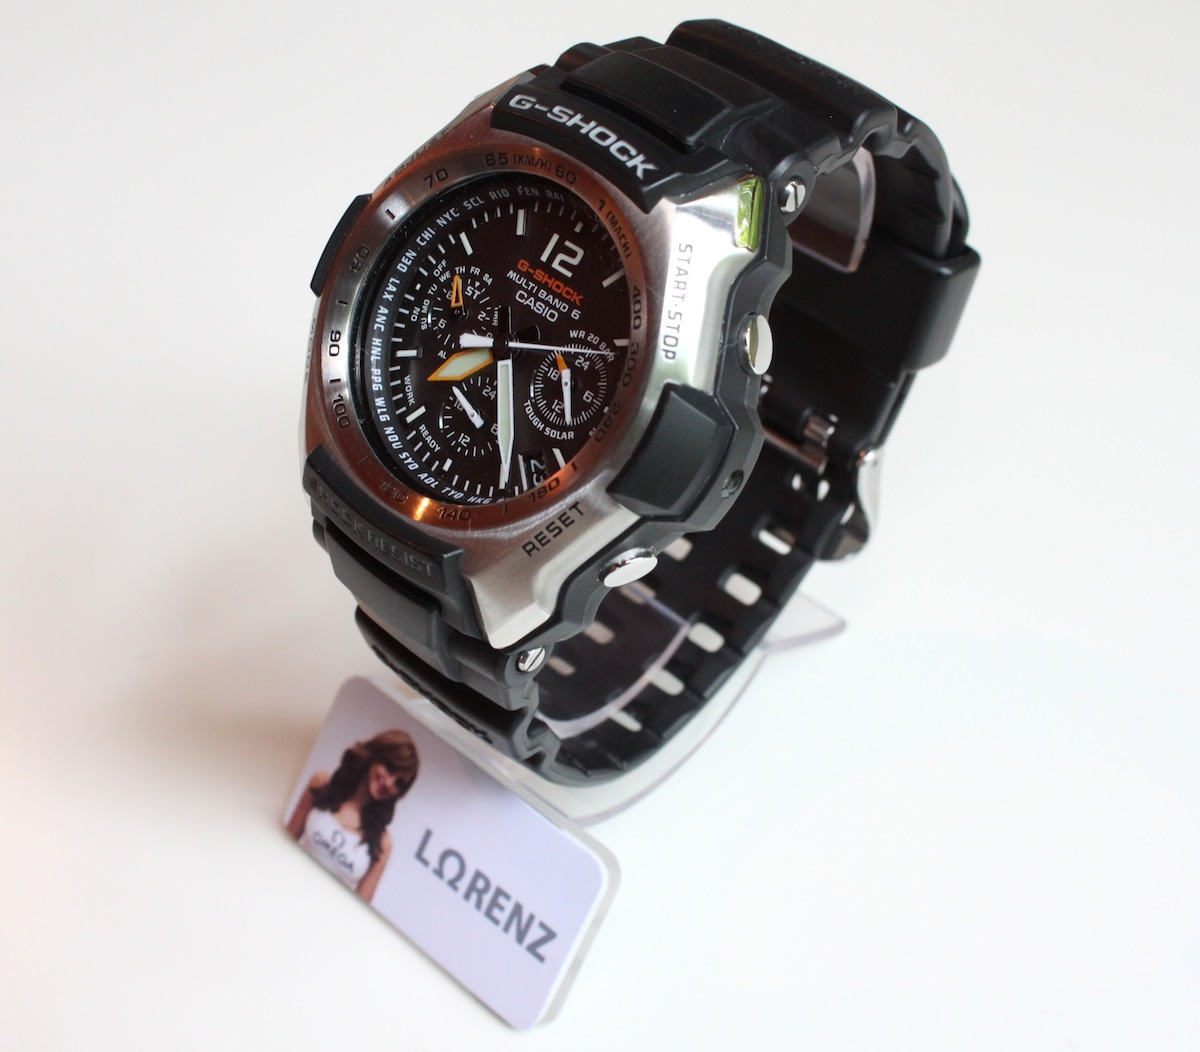 erledigt casio g shock gw 2000 1avef analoge fliegeruhr. Black Bedroom Furniture Sets. Home Design Ideas